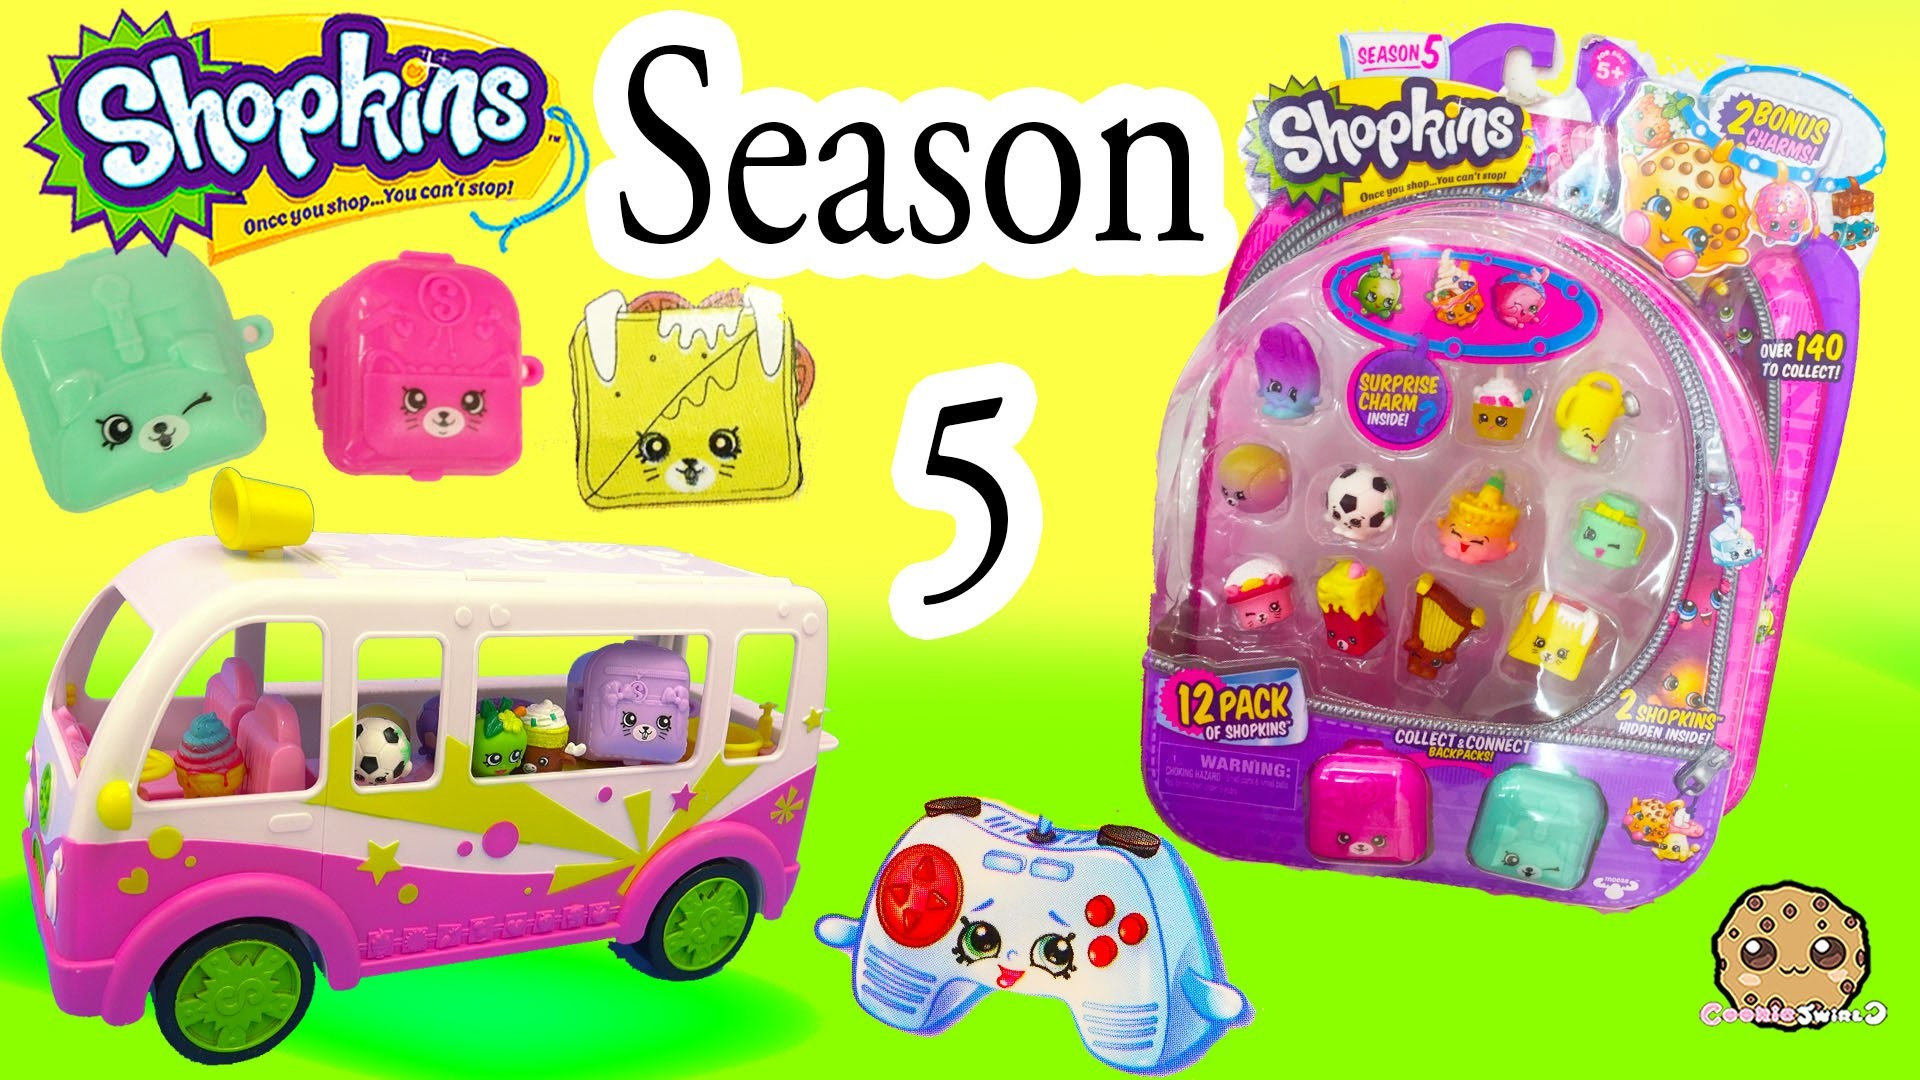 Season 5 Shopkins 12 Pack with Glow In The Dark Surprise Blind Bag + Charms  – Video Cookieswirlc – YouTube